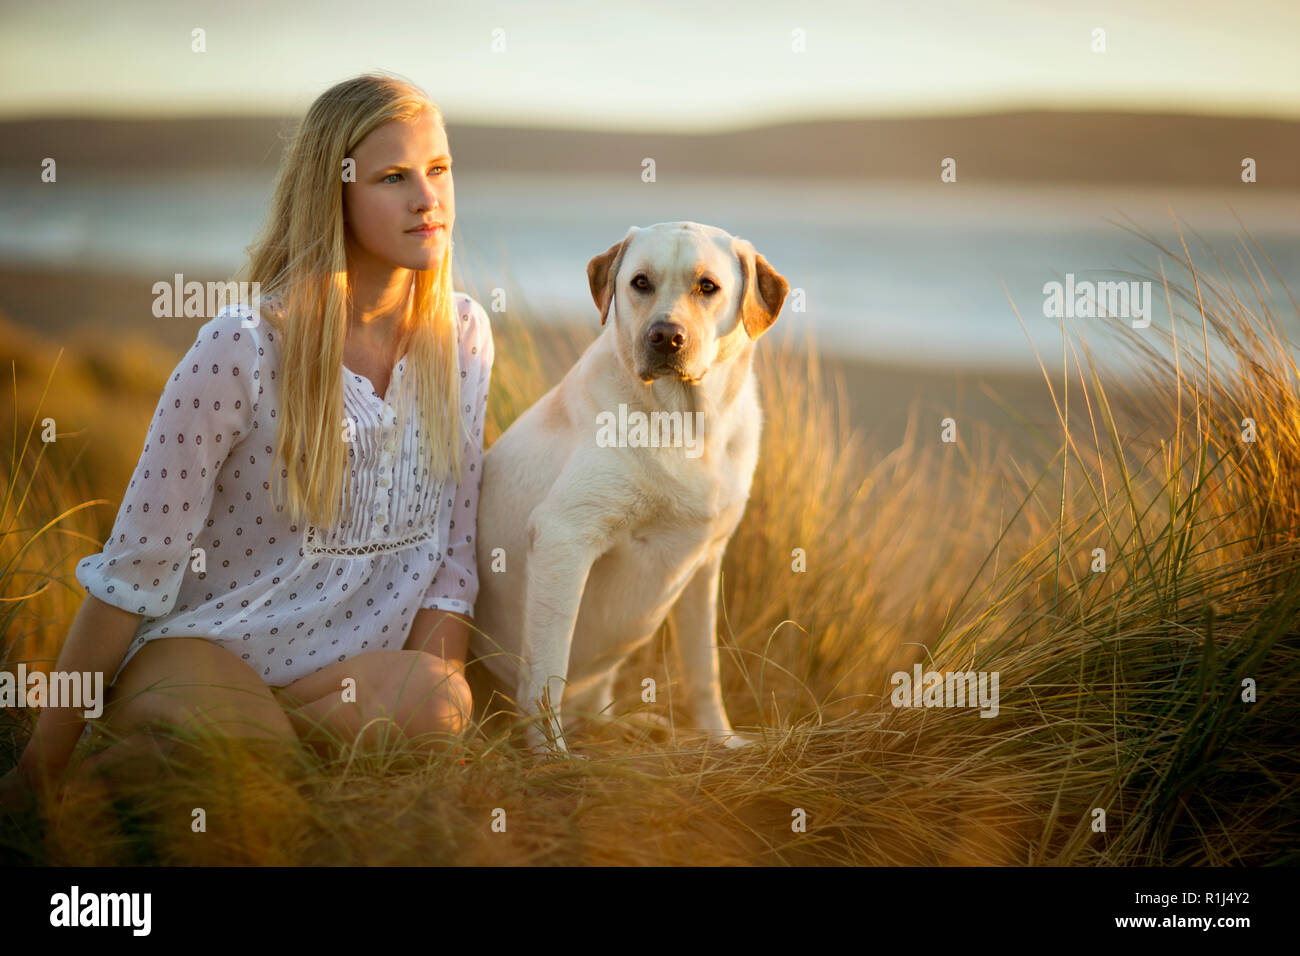 Teenage girl sitting in a grassy sand dune with her dog. Stock Photo